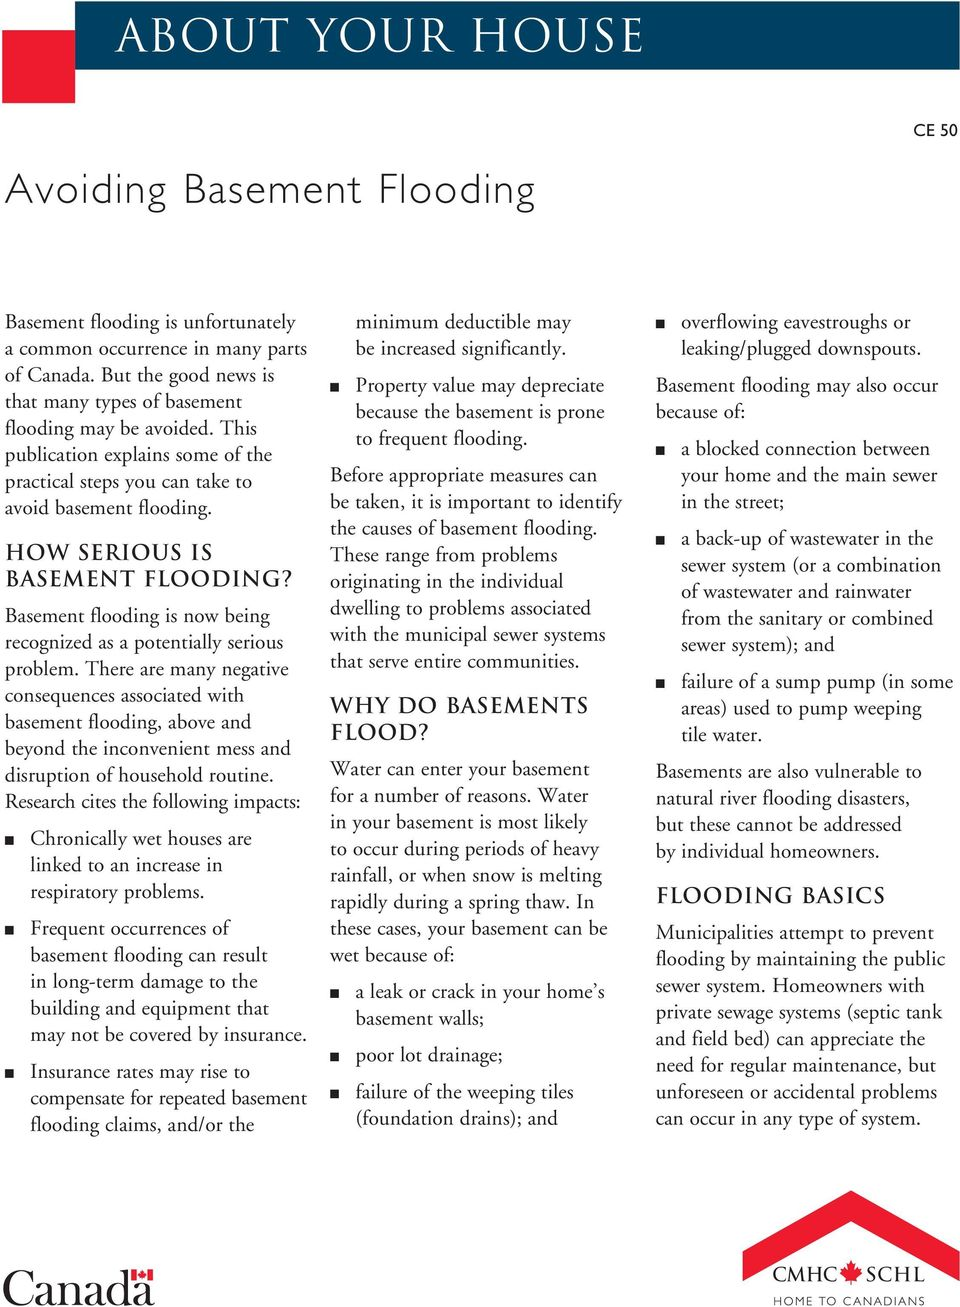 Basement flooding is now being recognized as a potentially serious problem.